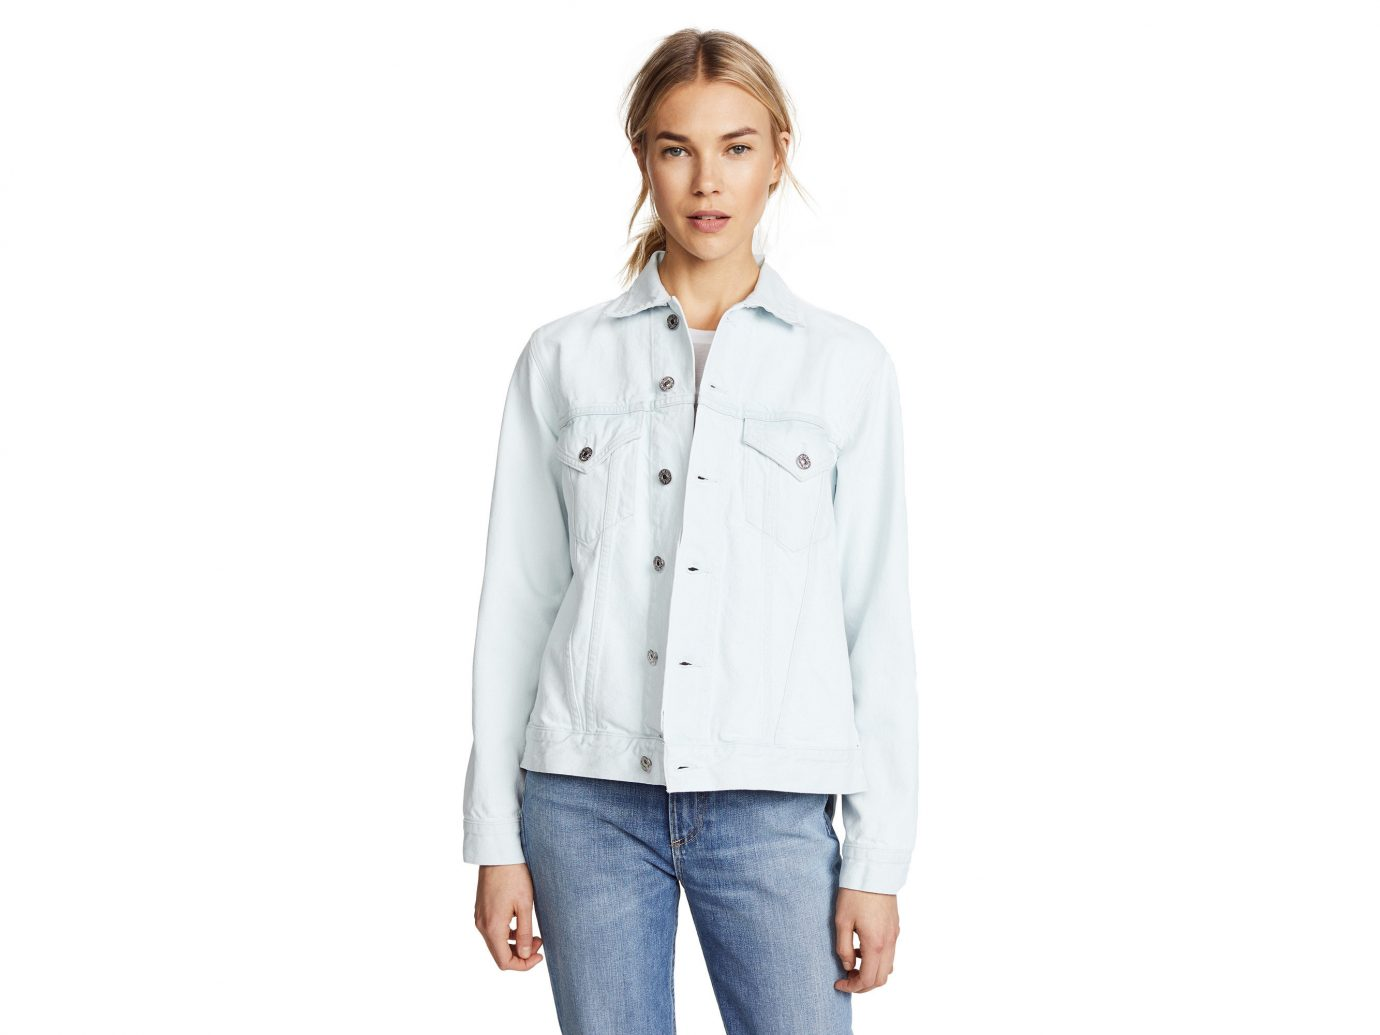 Packing Tips Spring Travel Style + Design Travel Shop person standing sleeve posing jacket shirt button denim blouse jeans